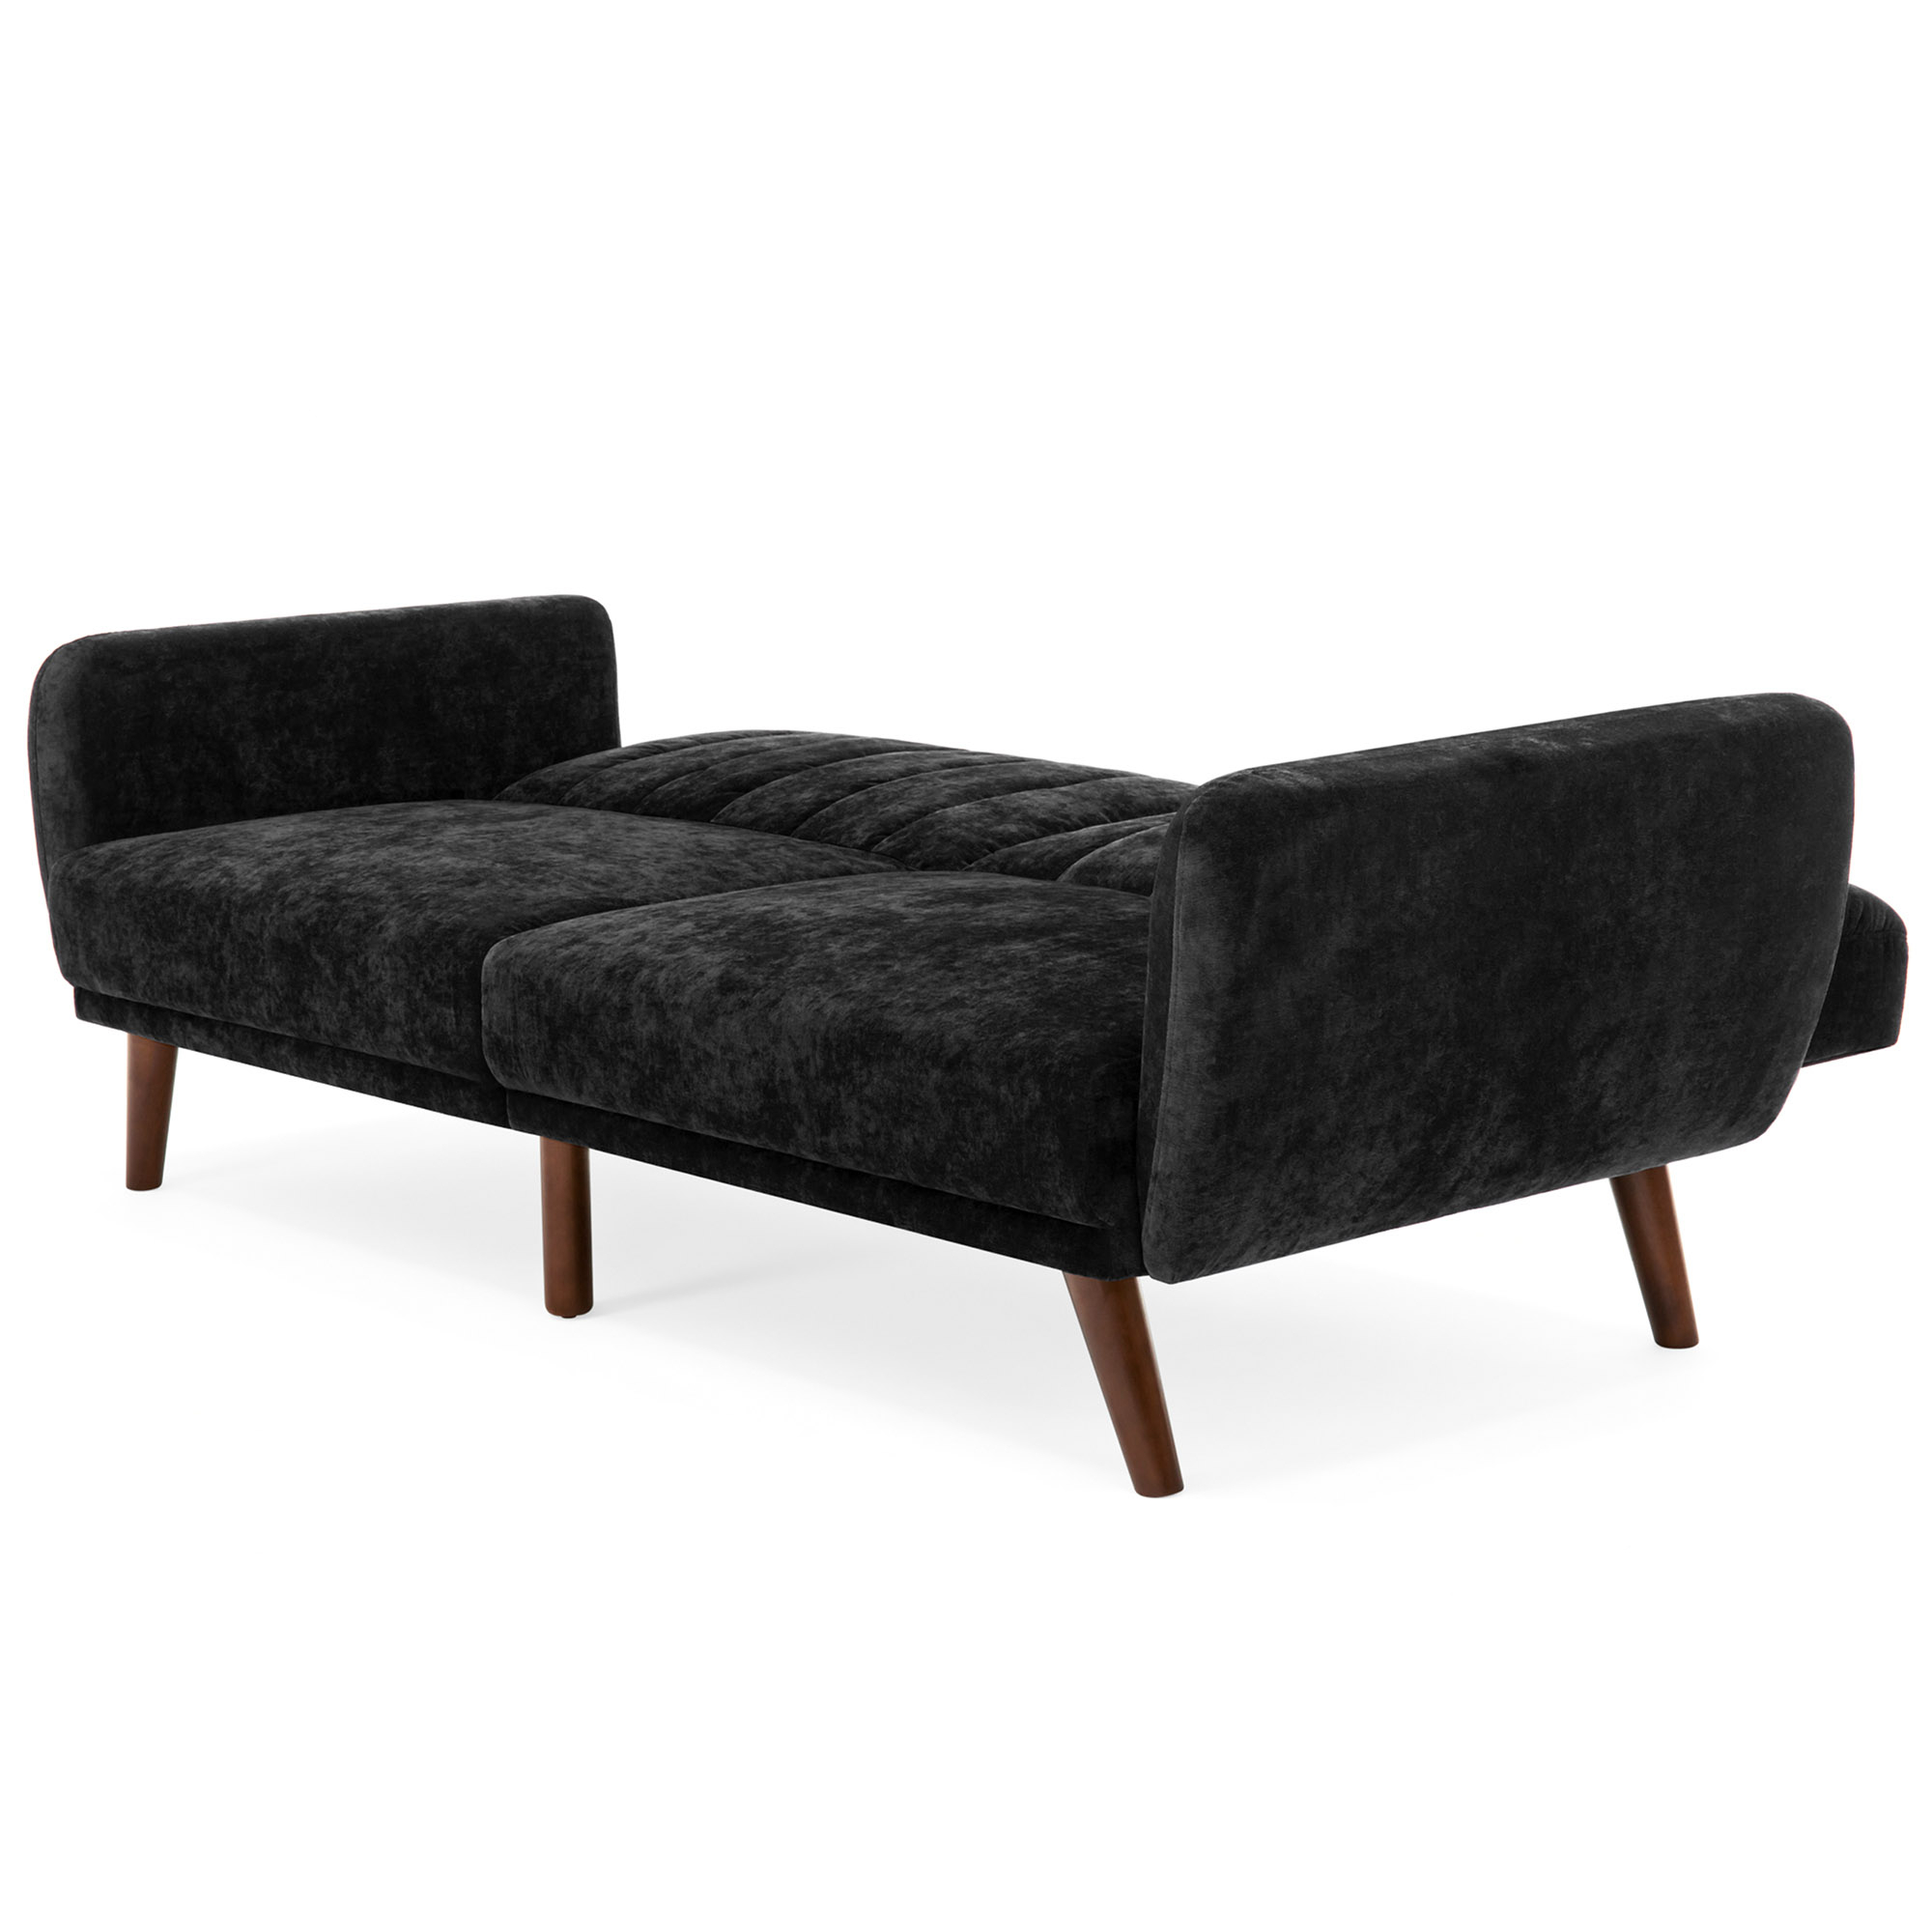 Sofa Bed Chairs Regarding Most Popular Bestchoiceproducts: Best Choice Products Velour Fold Down Futon Sofa (View 17 of 20)